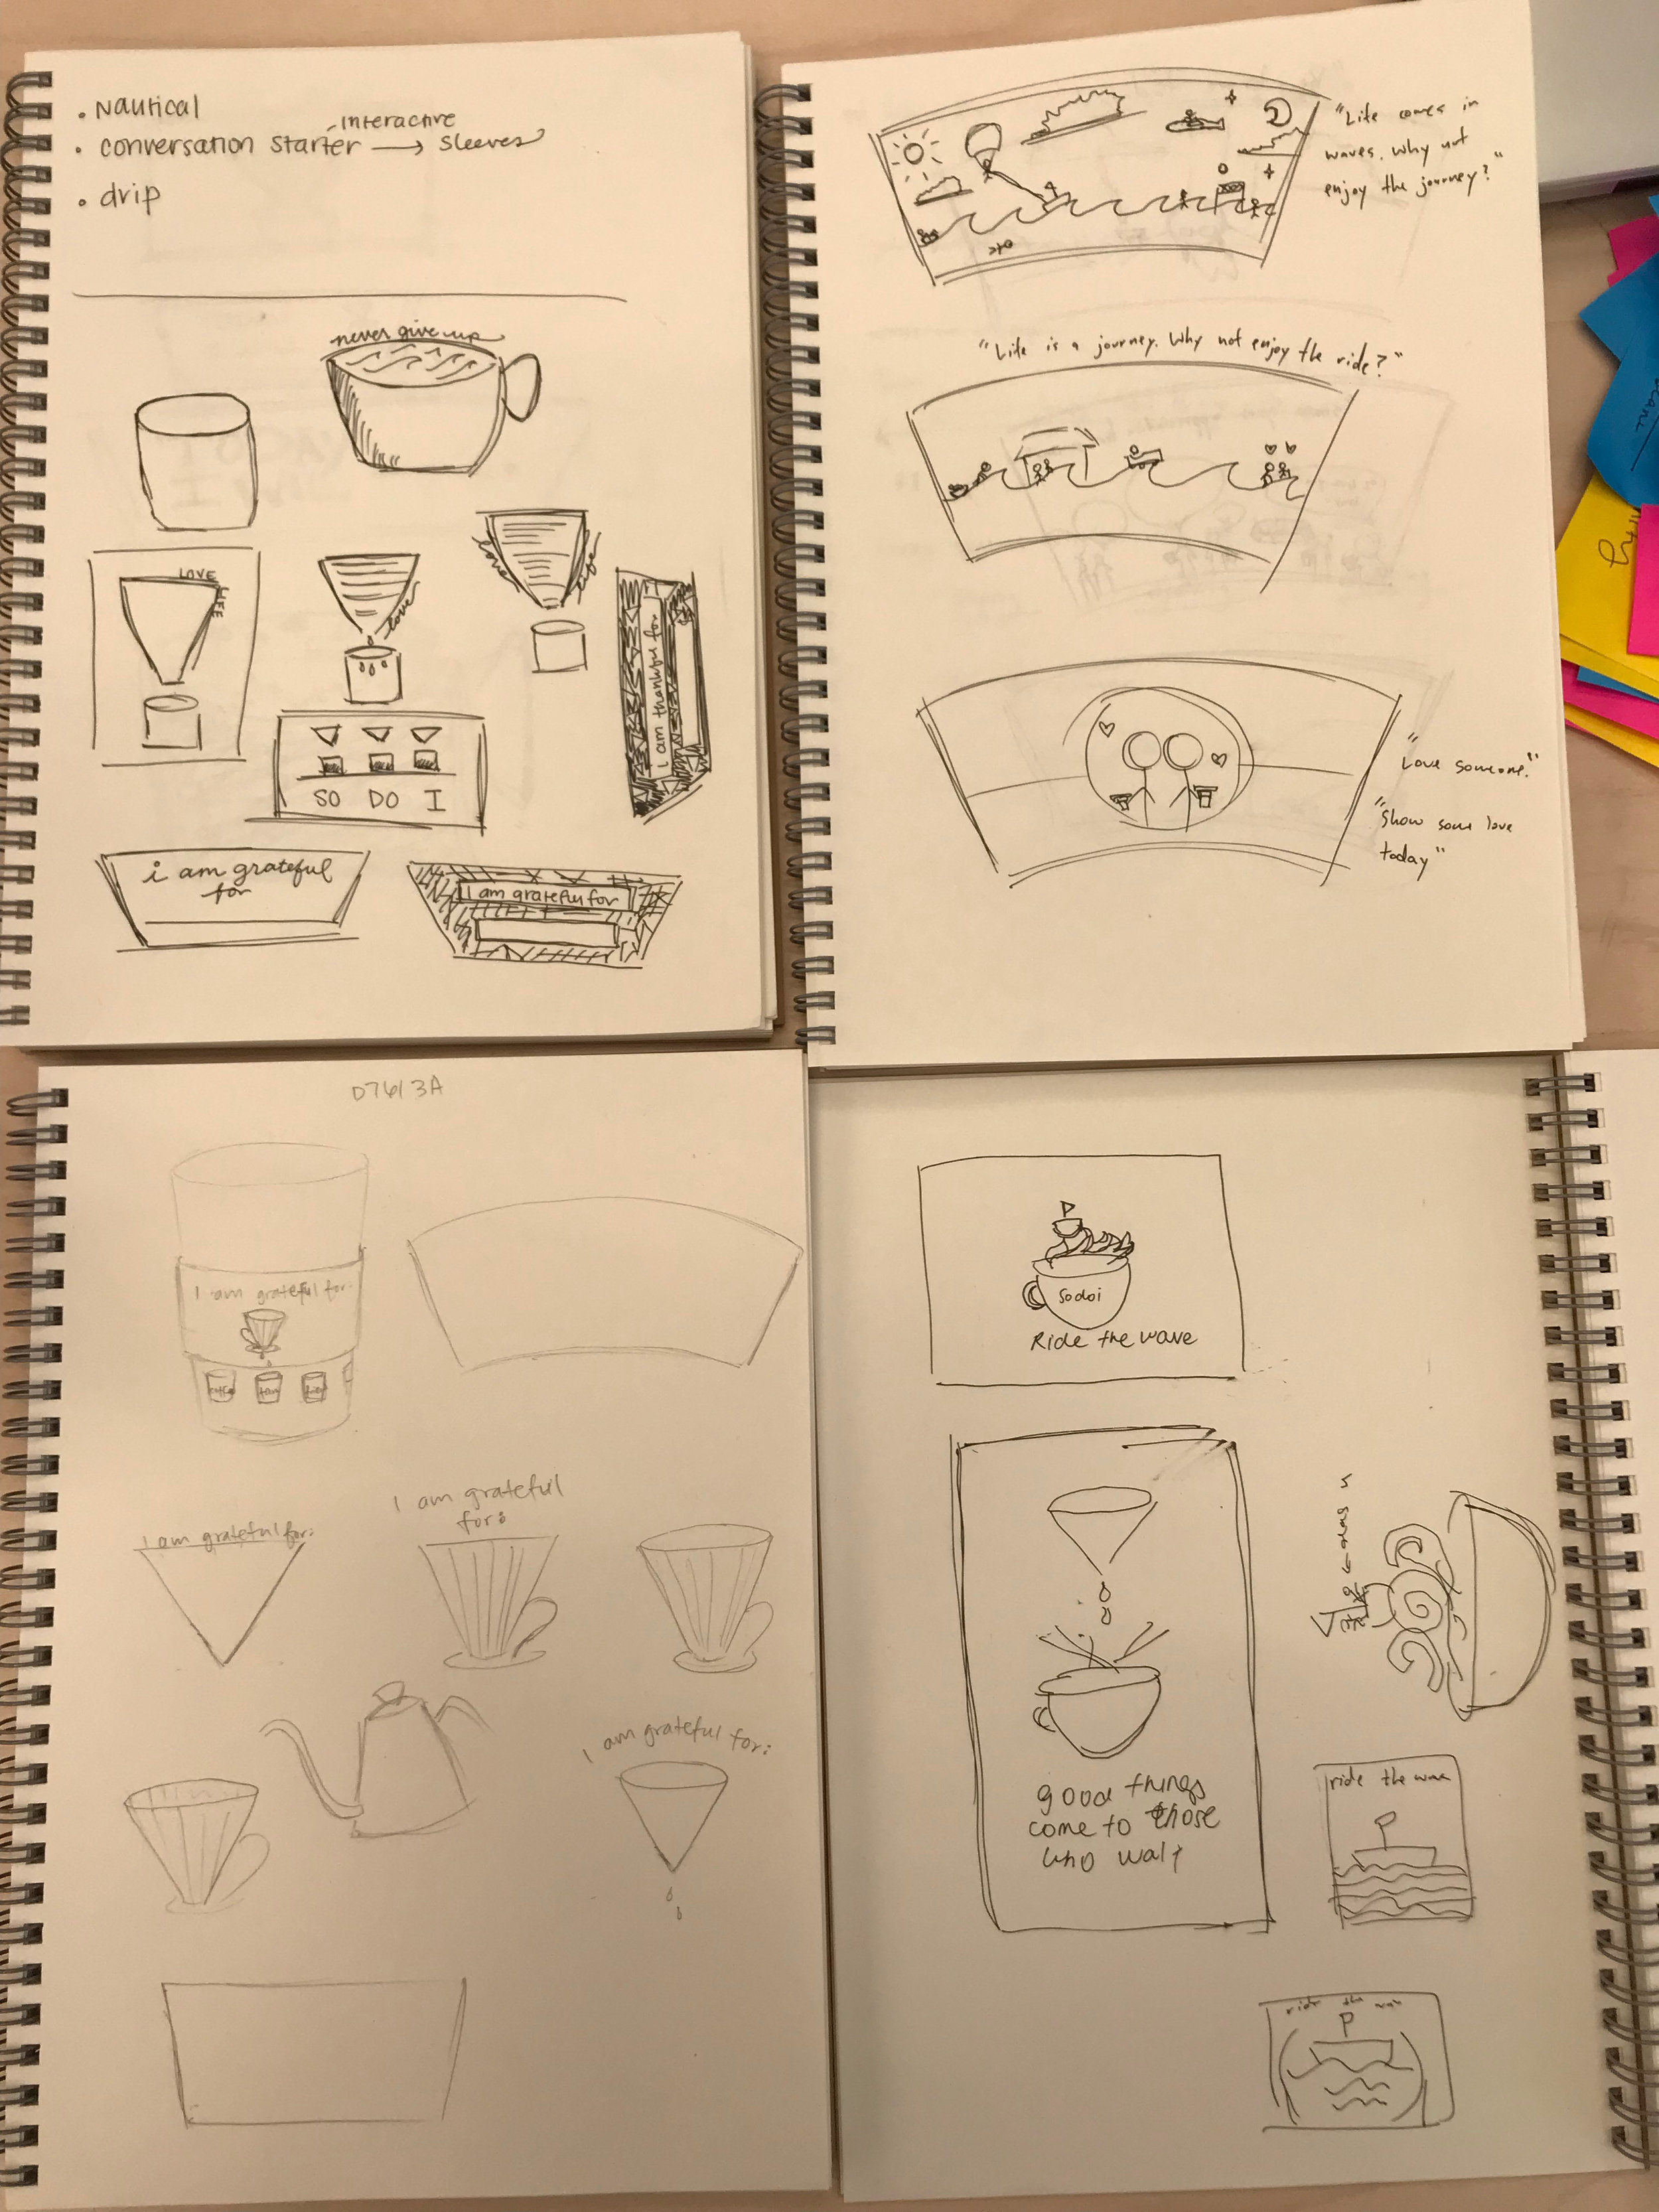 Some of the sketches from myself and my team members that served as inspirations for the final design.